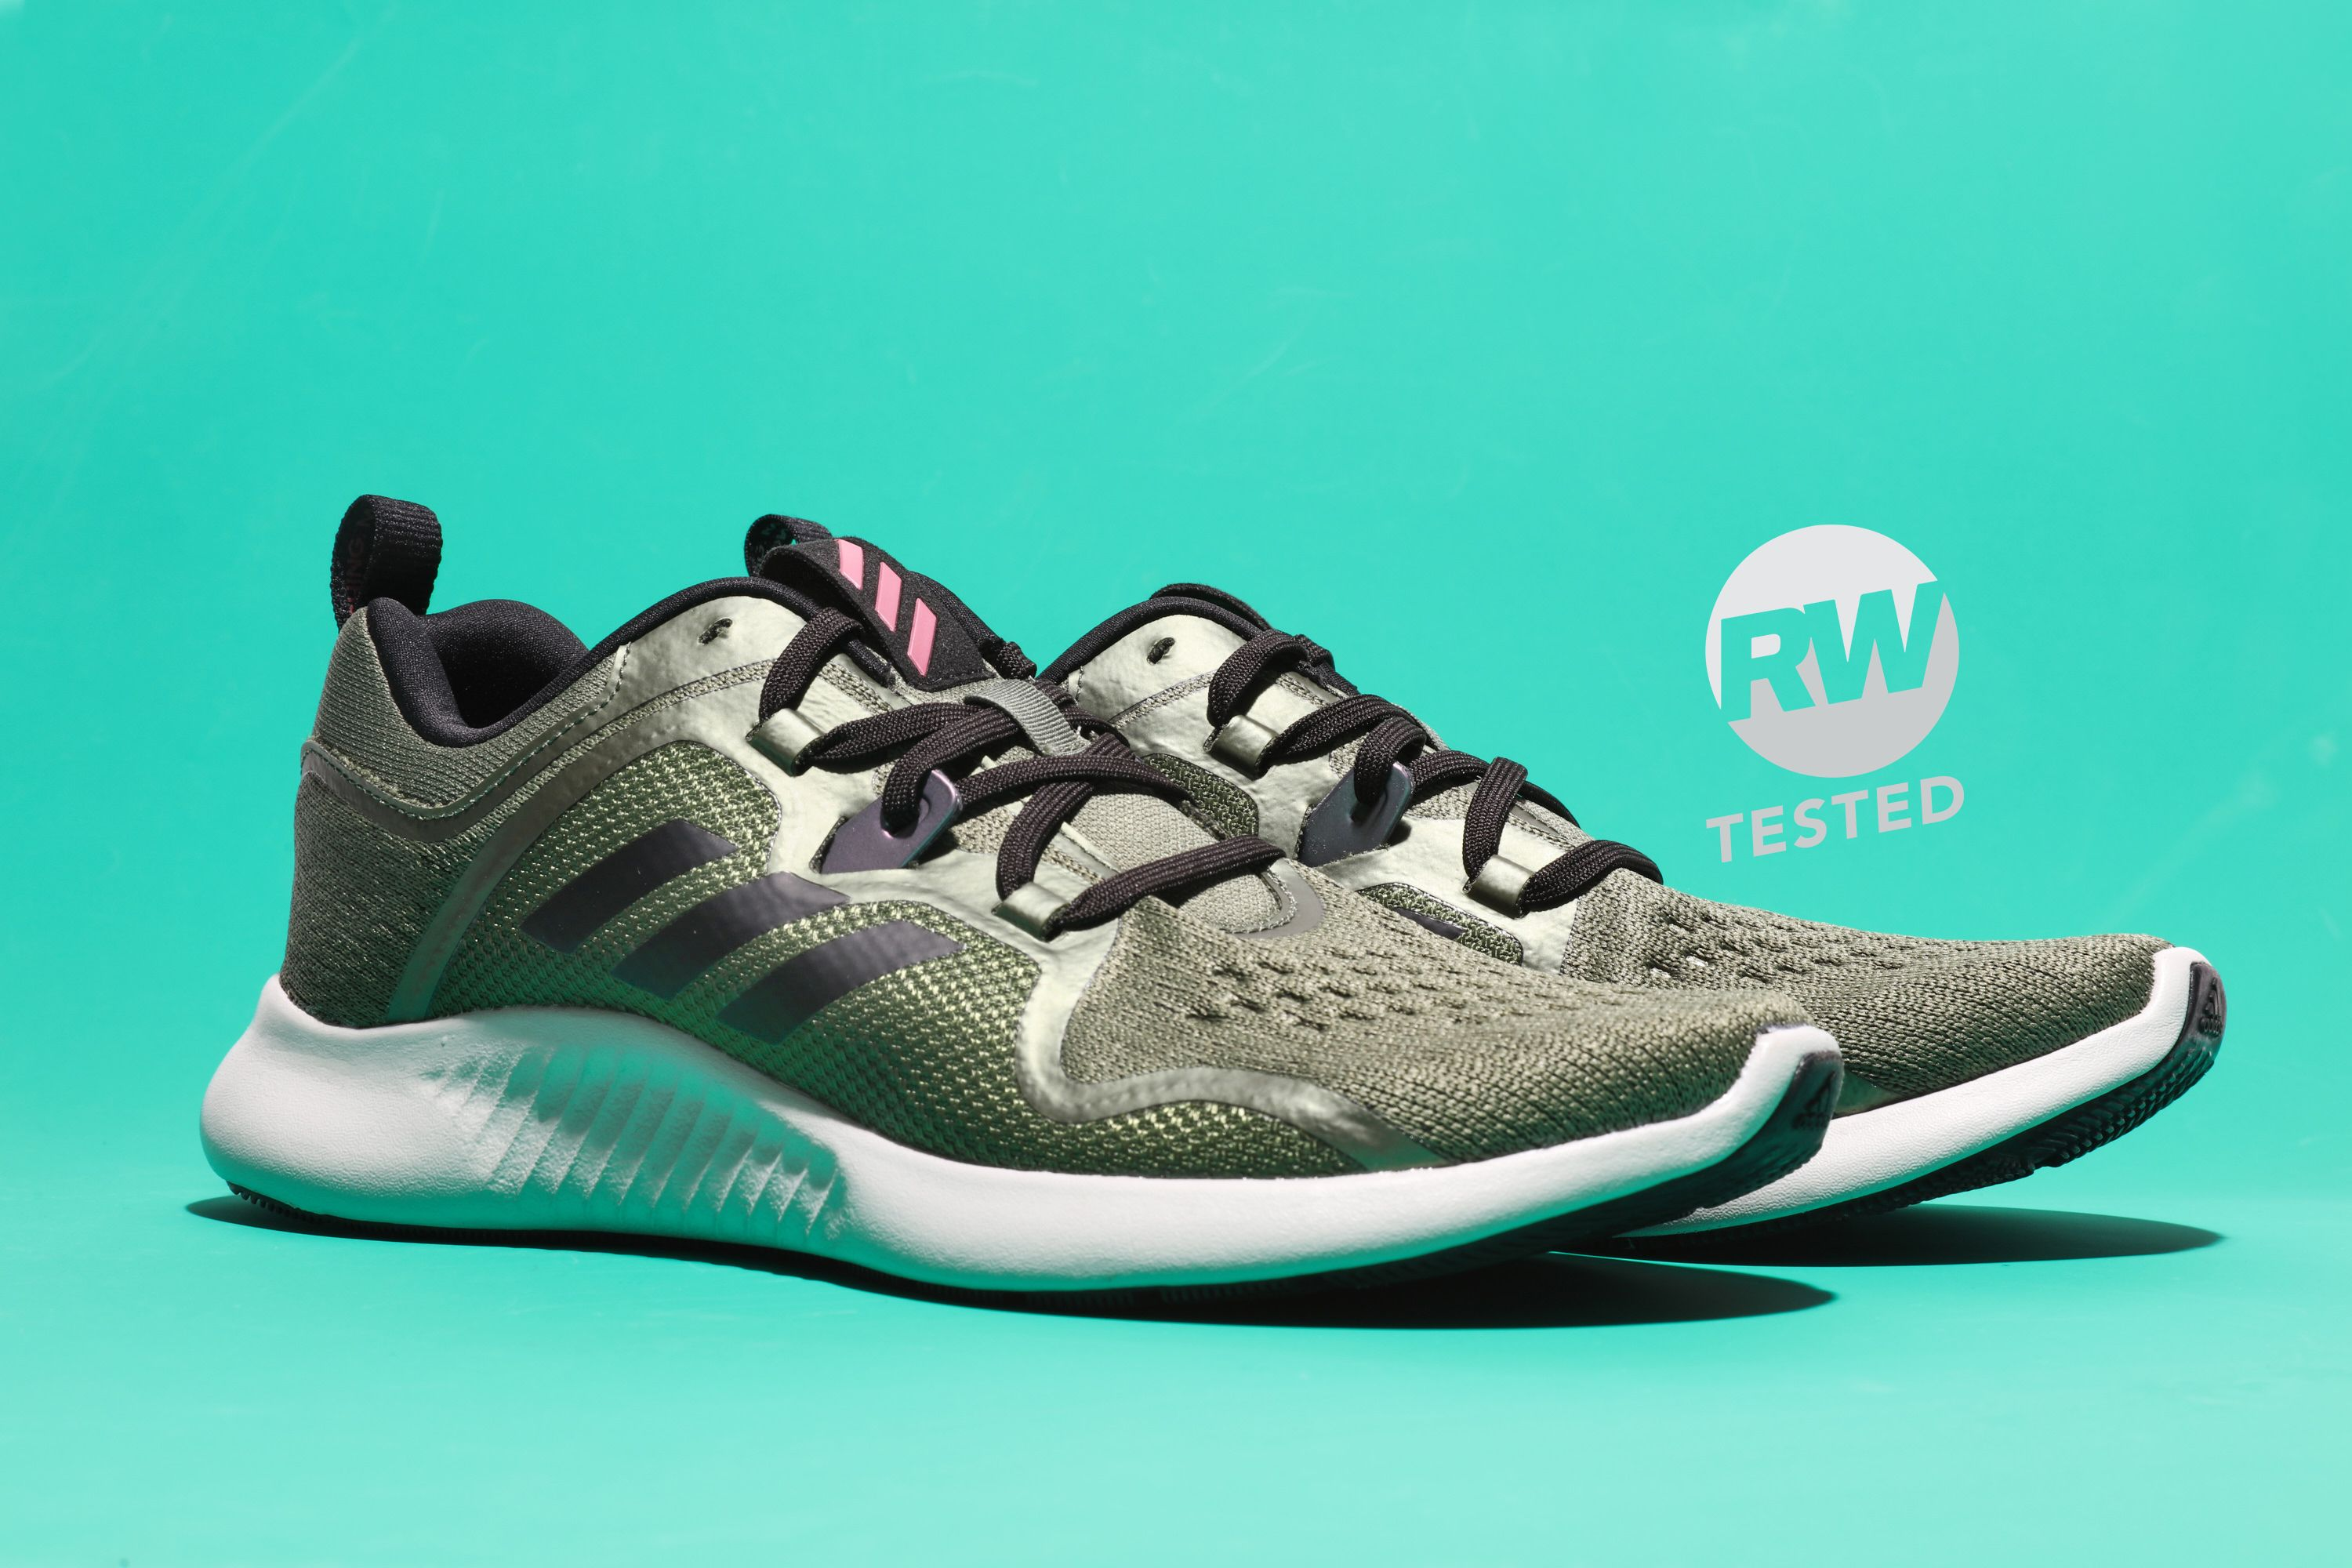 Adidas Edgebounce Review Running Shoes for Women